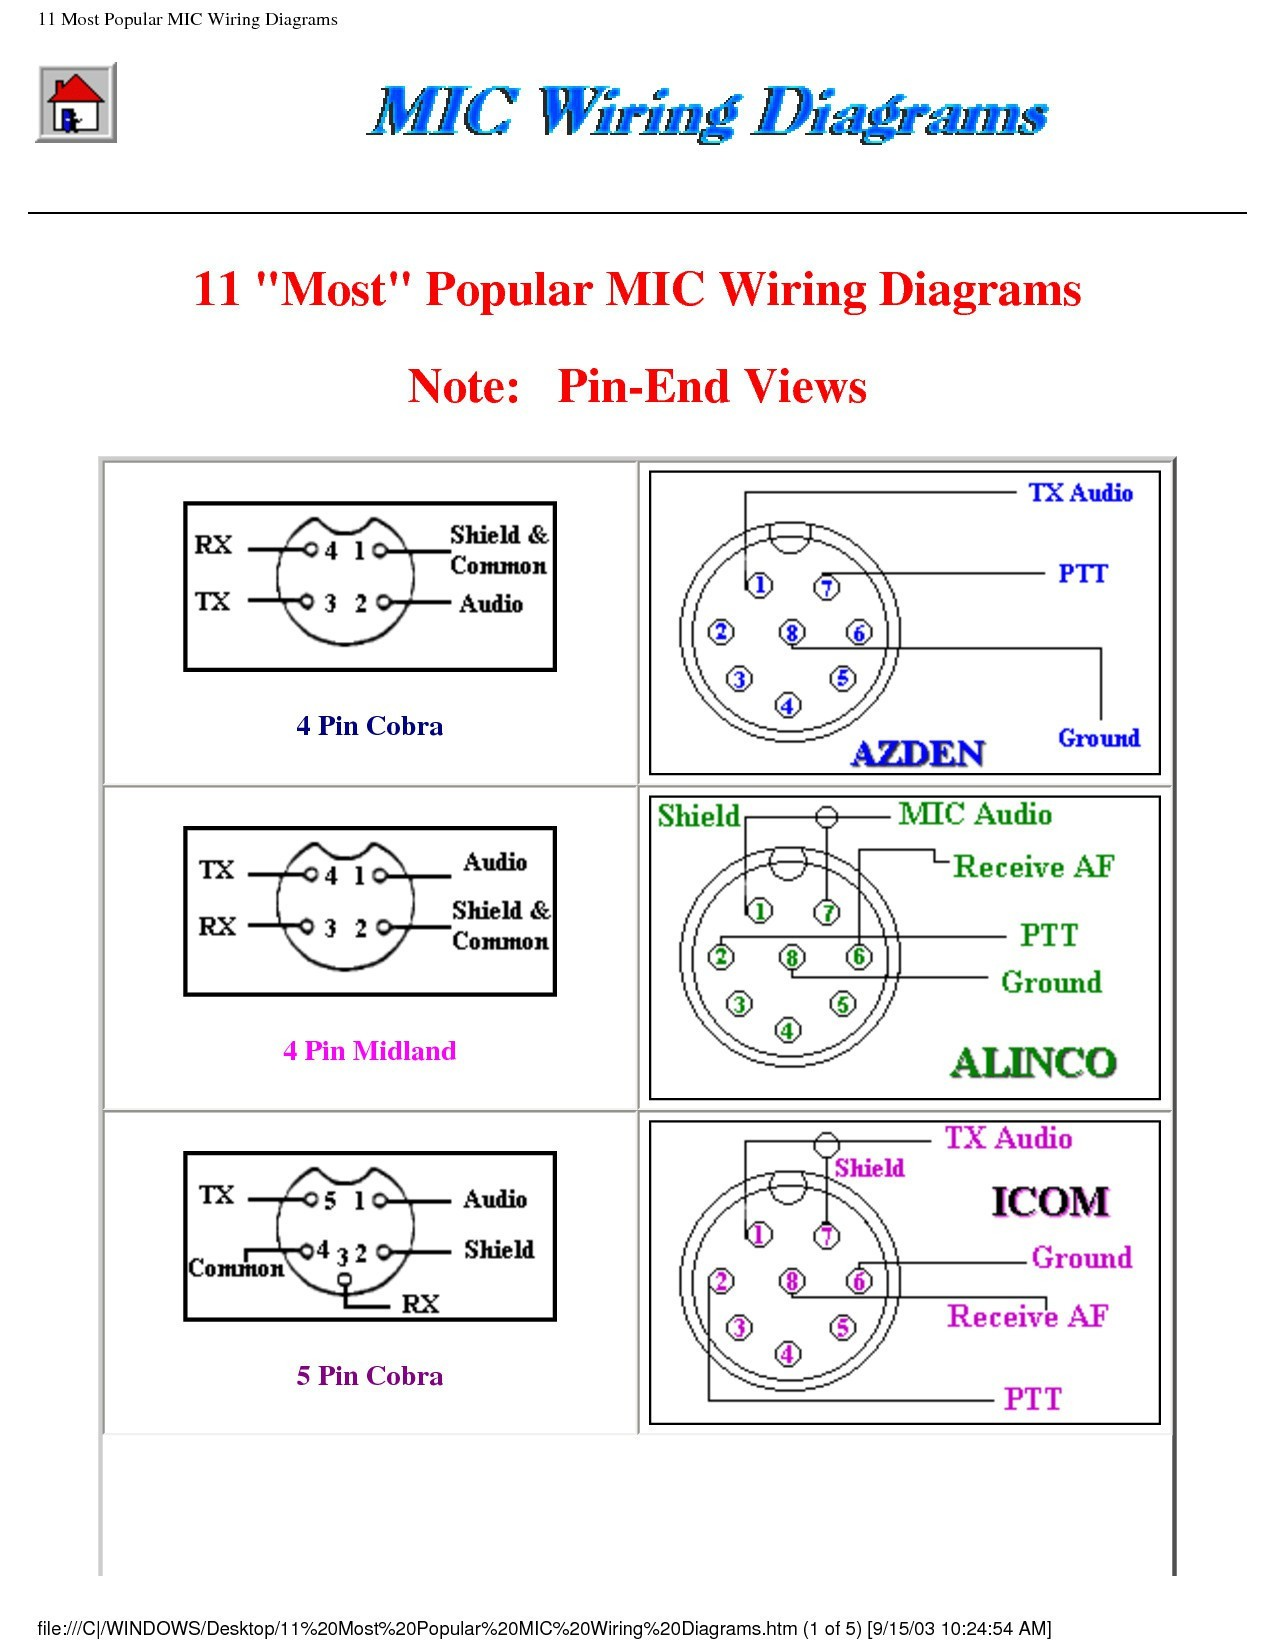 hight resolution of 5 pin cb mic wiring diagram wiring diagram 5 pin cb mic  wiring